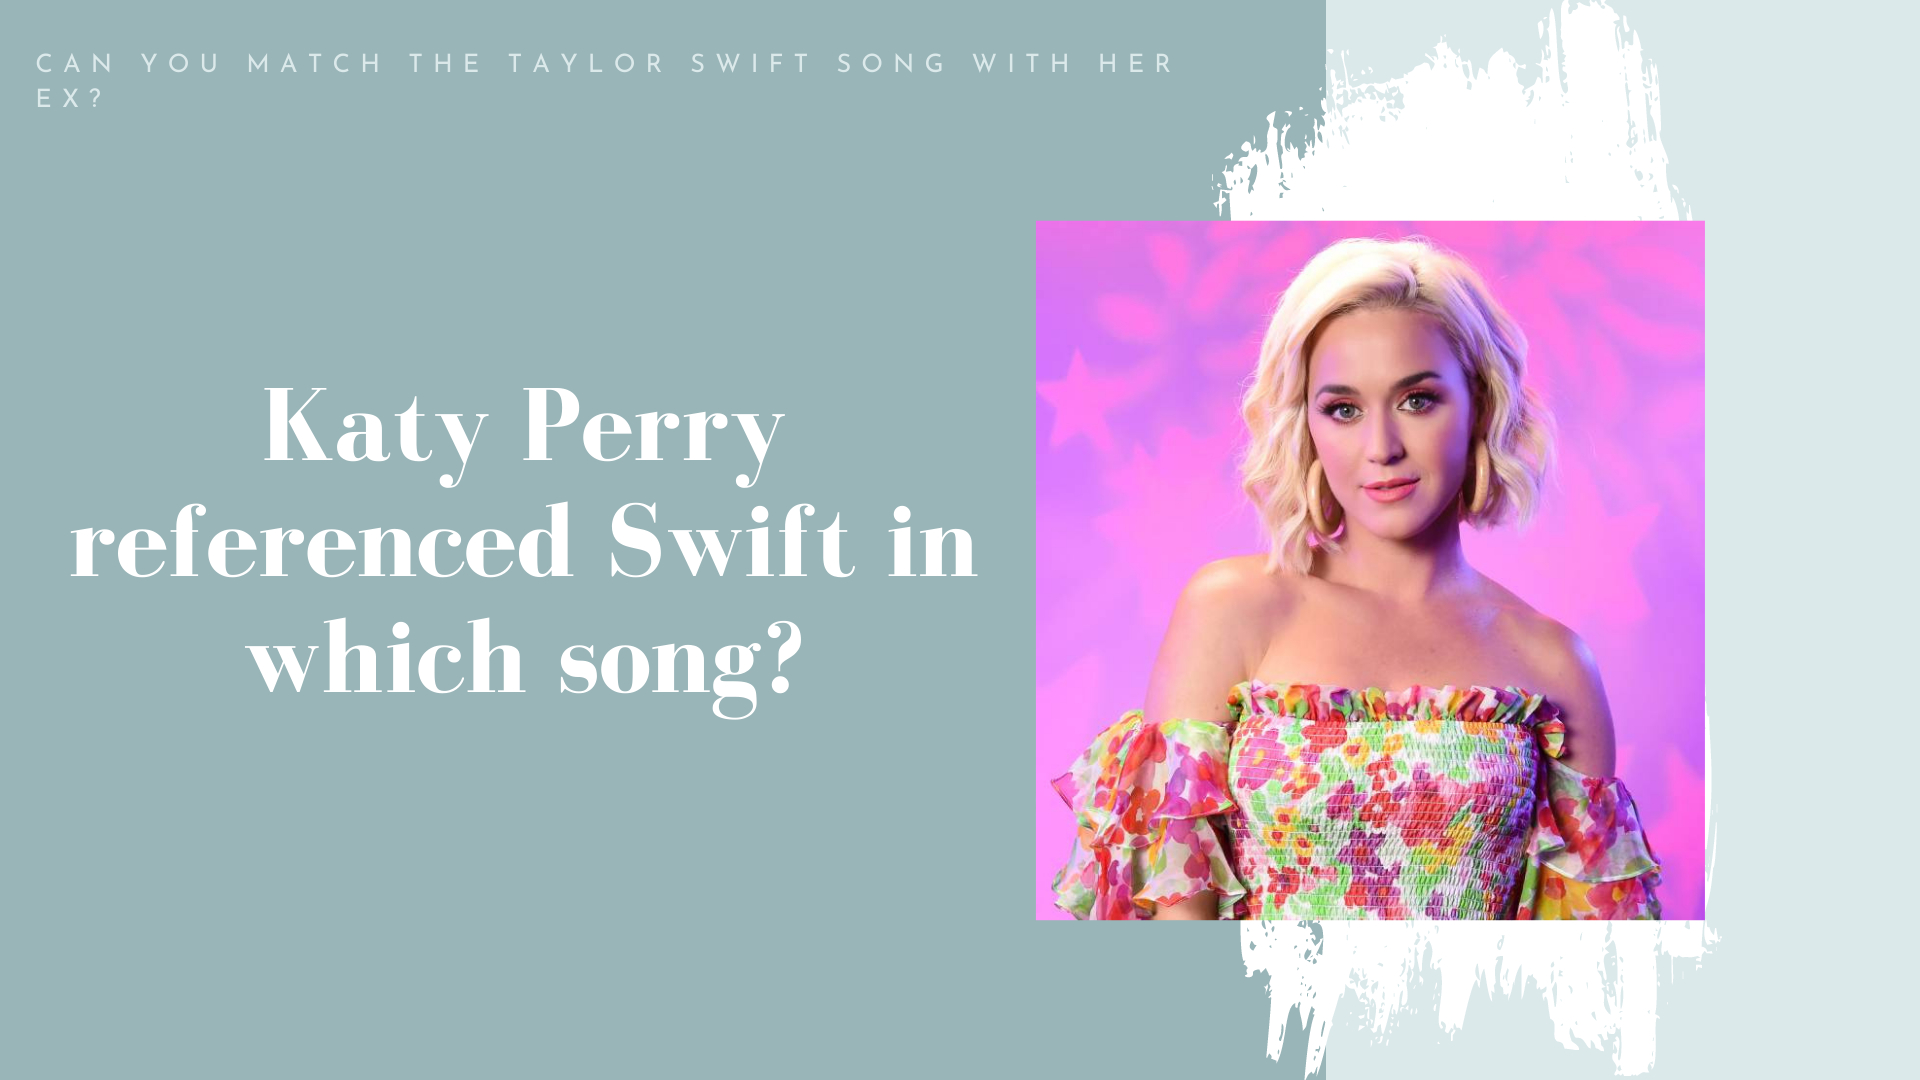 katy perry song